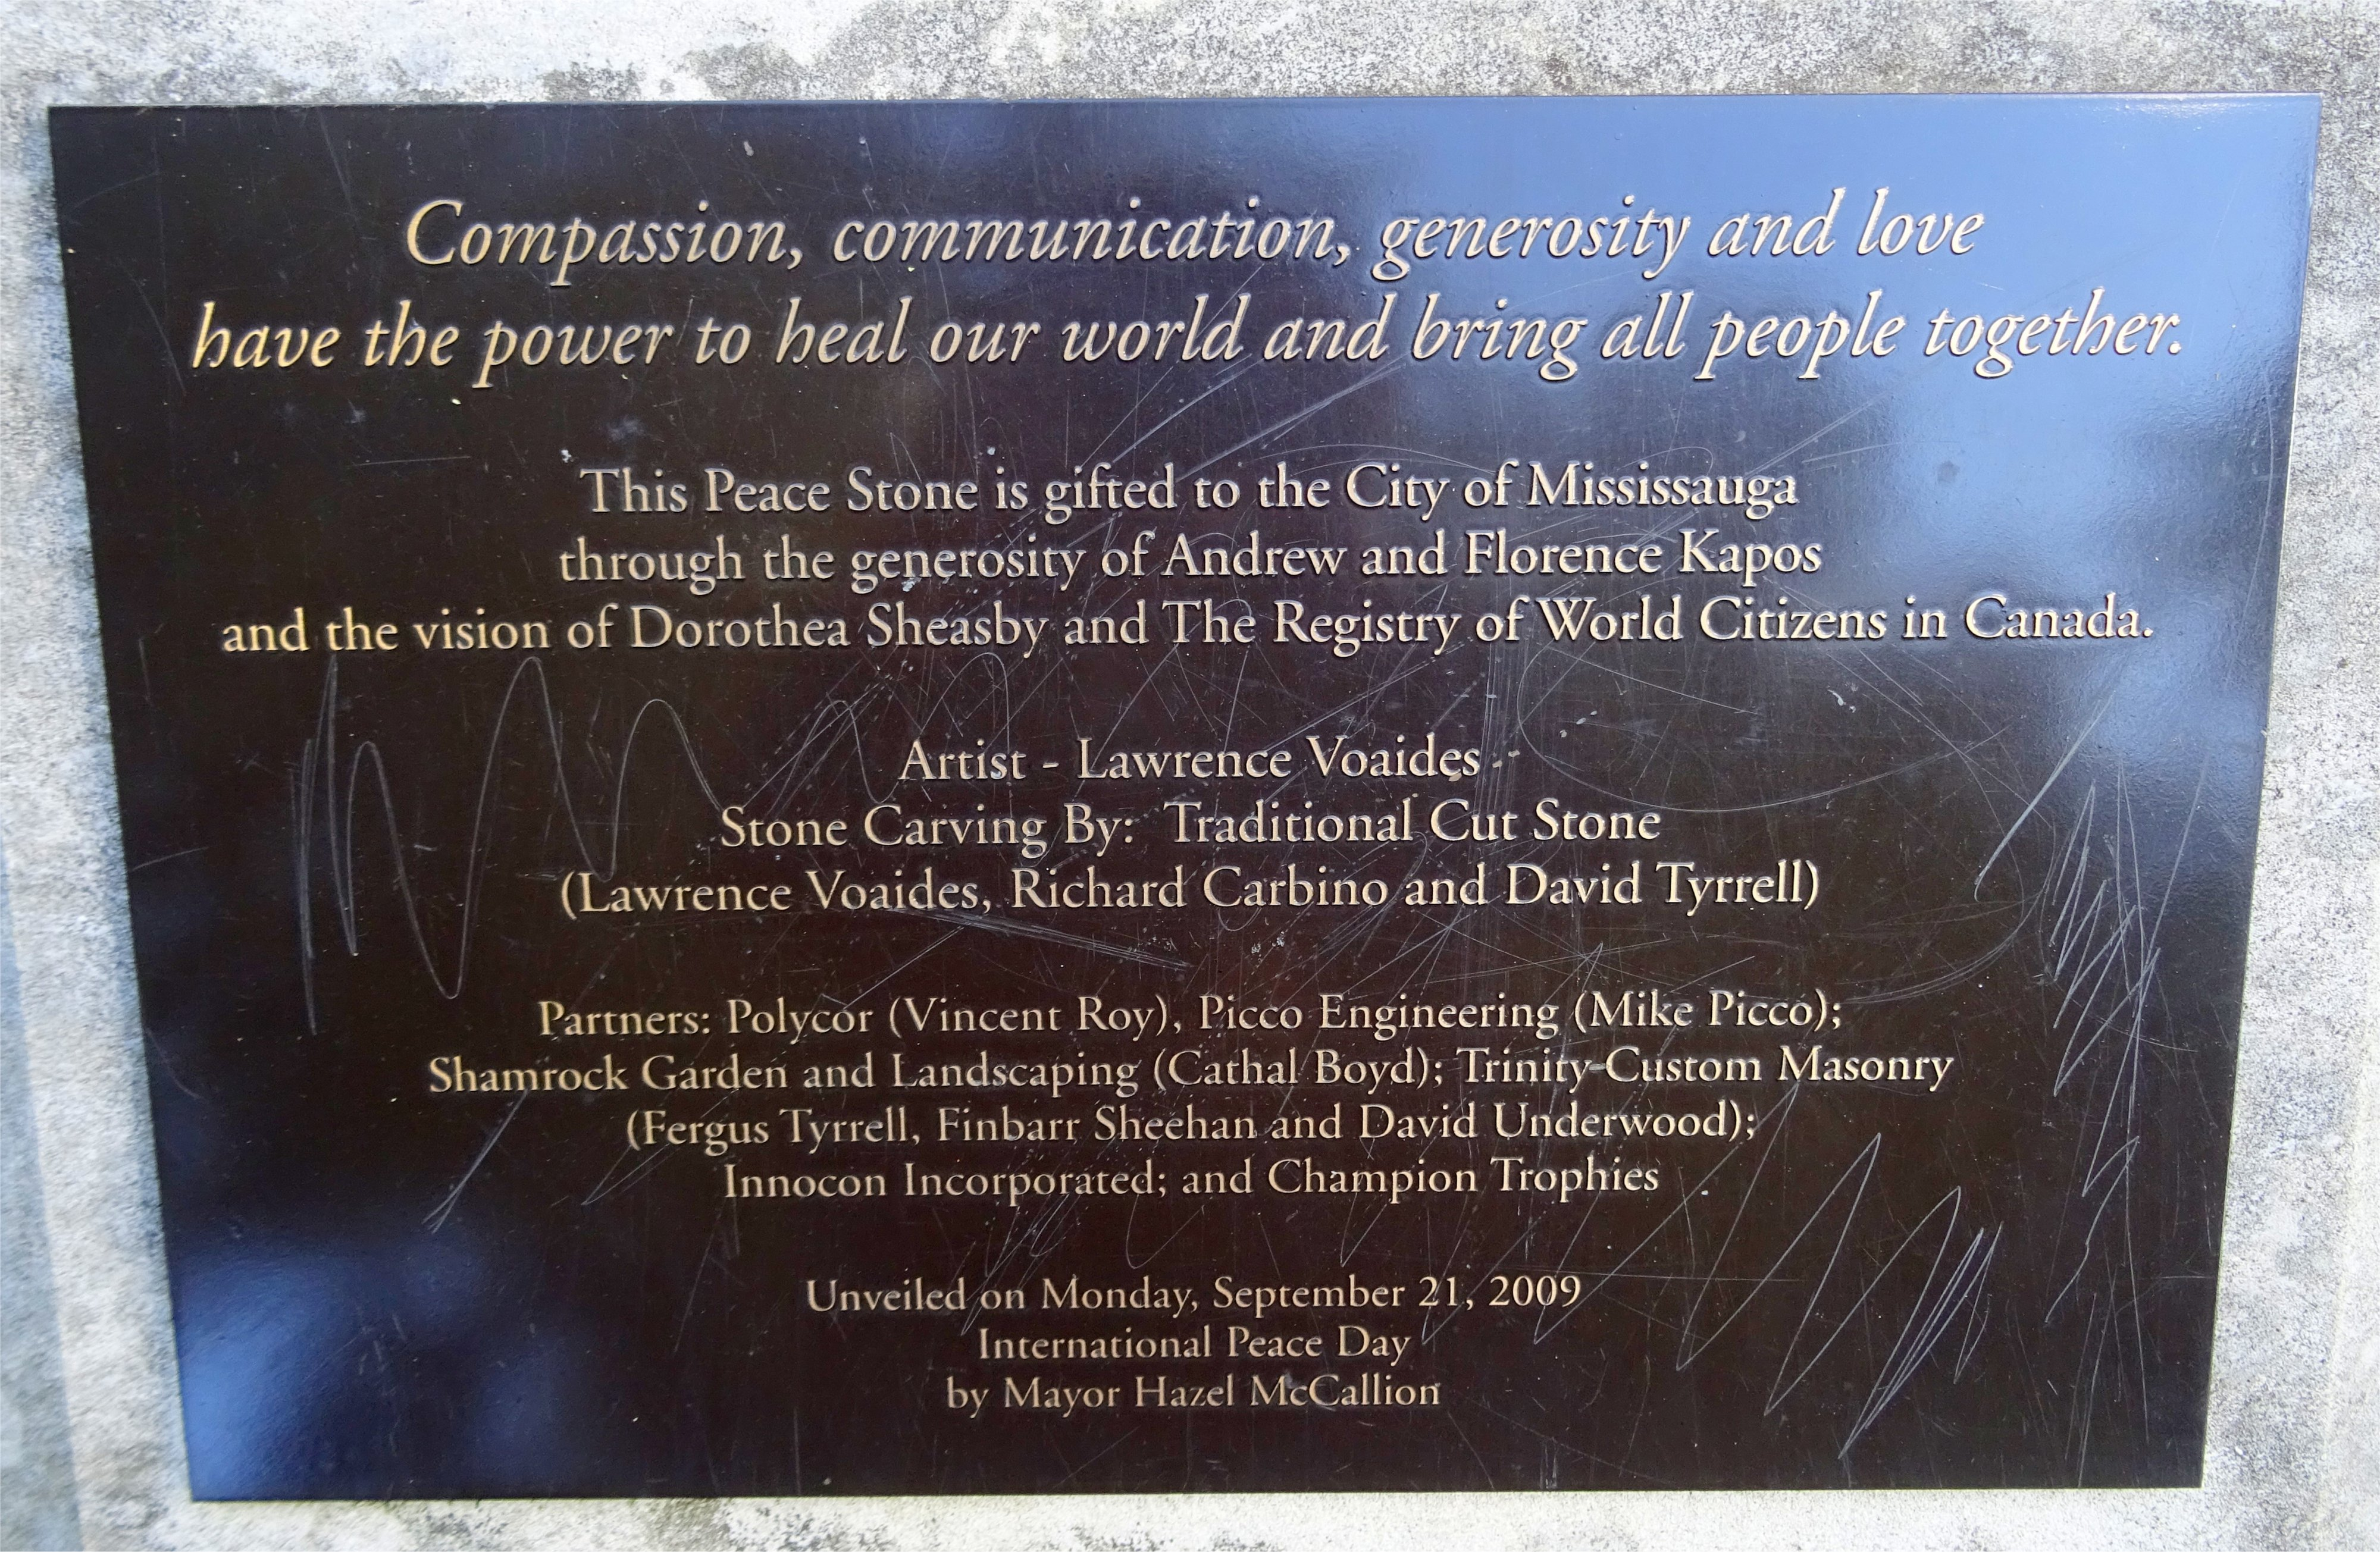 Peace Stone Unveiled by Mayor Hazel McCallion on September 21, 2009 by the shores of Lake Ontario in Richard's Memorial Park, 804 Lakeshore Road West, Mississauga ON L5H 1E5 Canada Photo by I Lee 27 Sep 2016